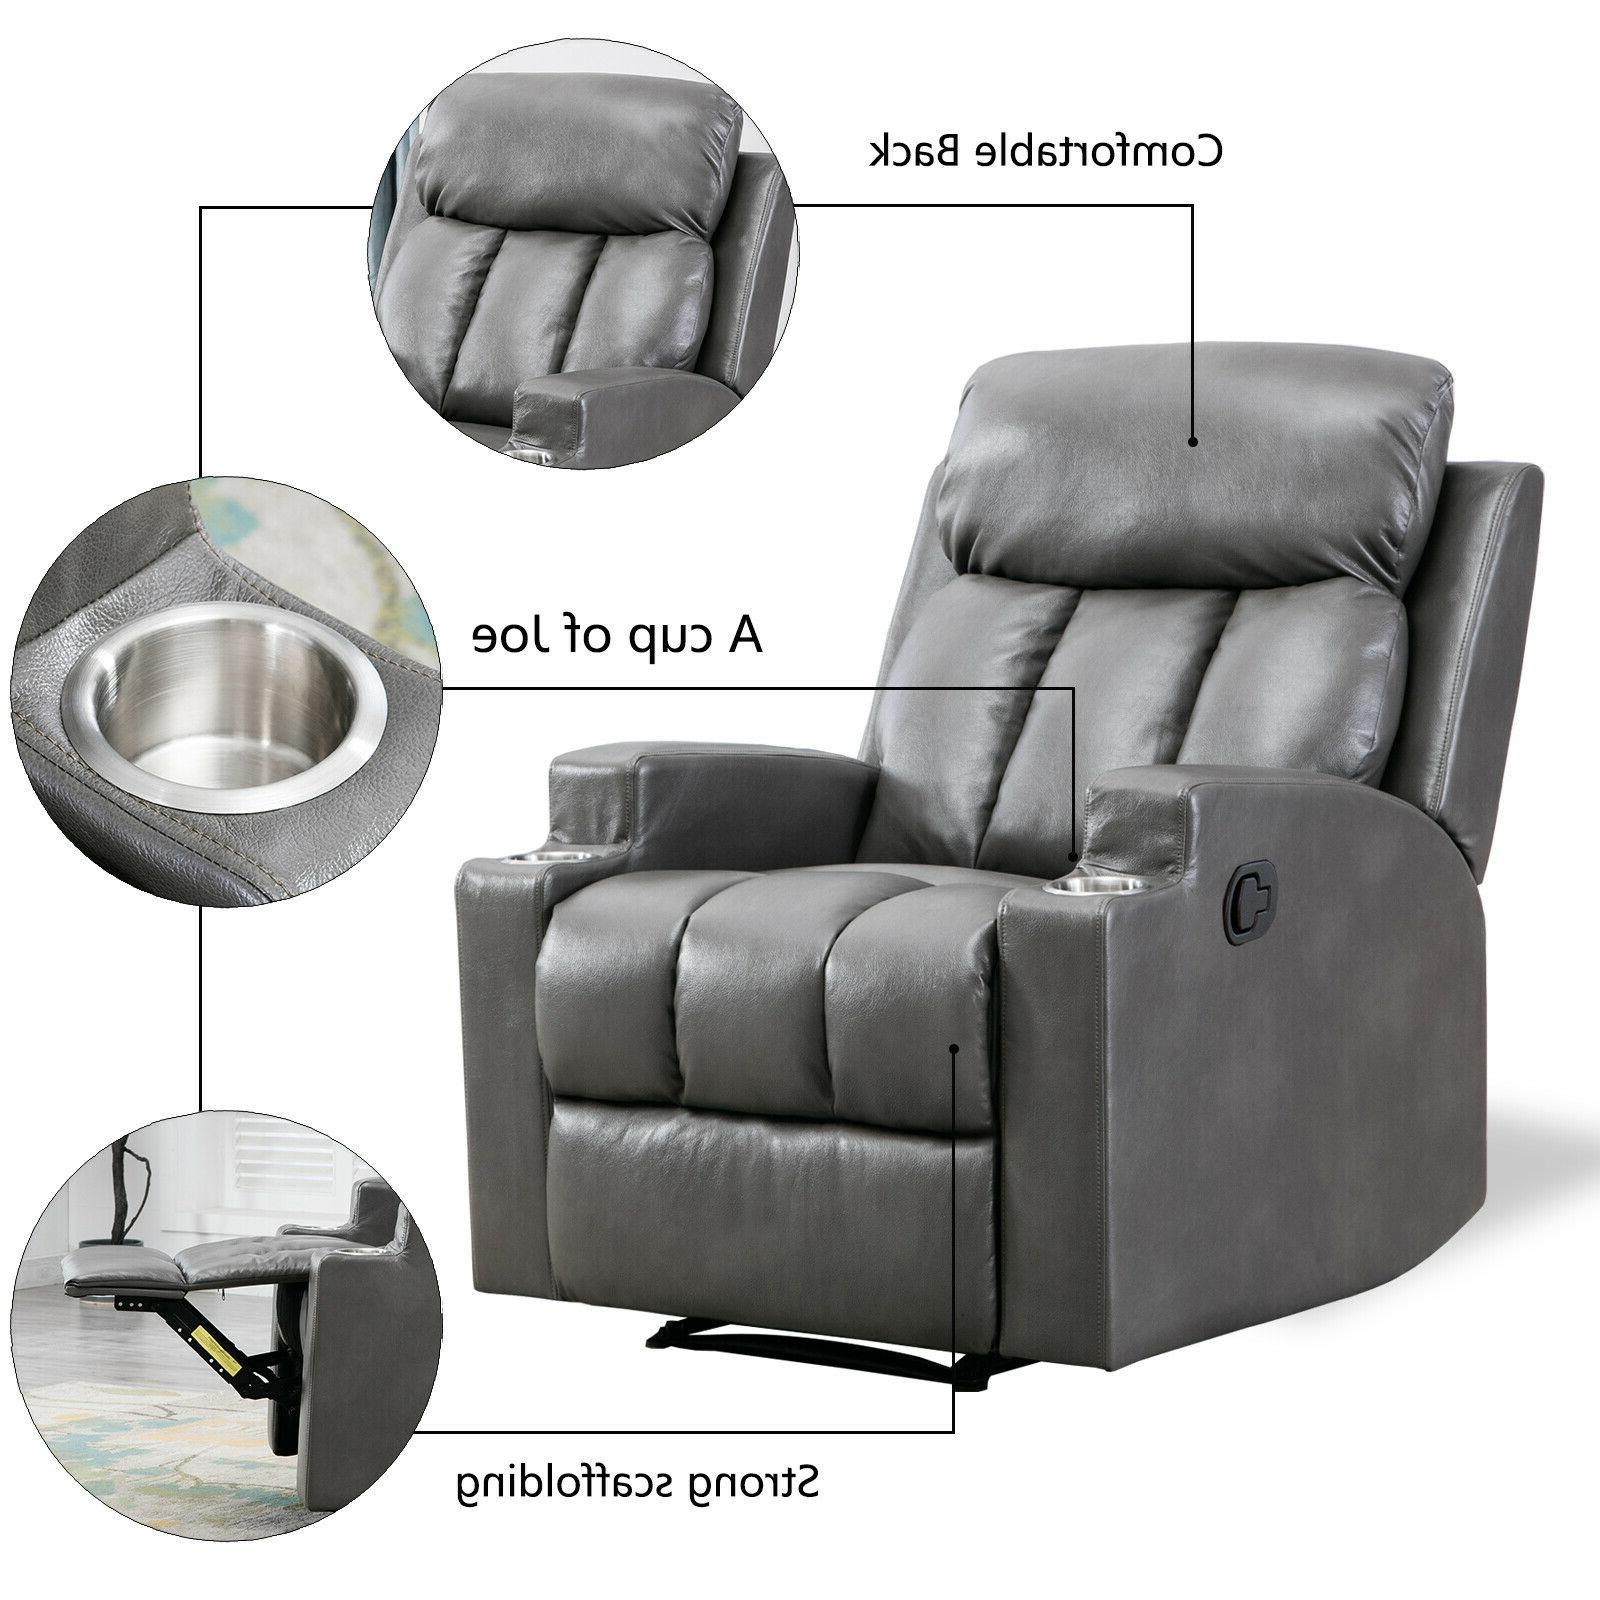 Leather Recliner Thick Backrest Sofa w/ Cup Holders Seating